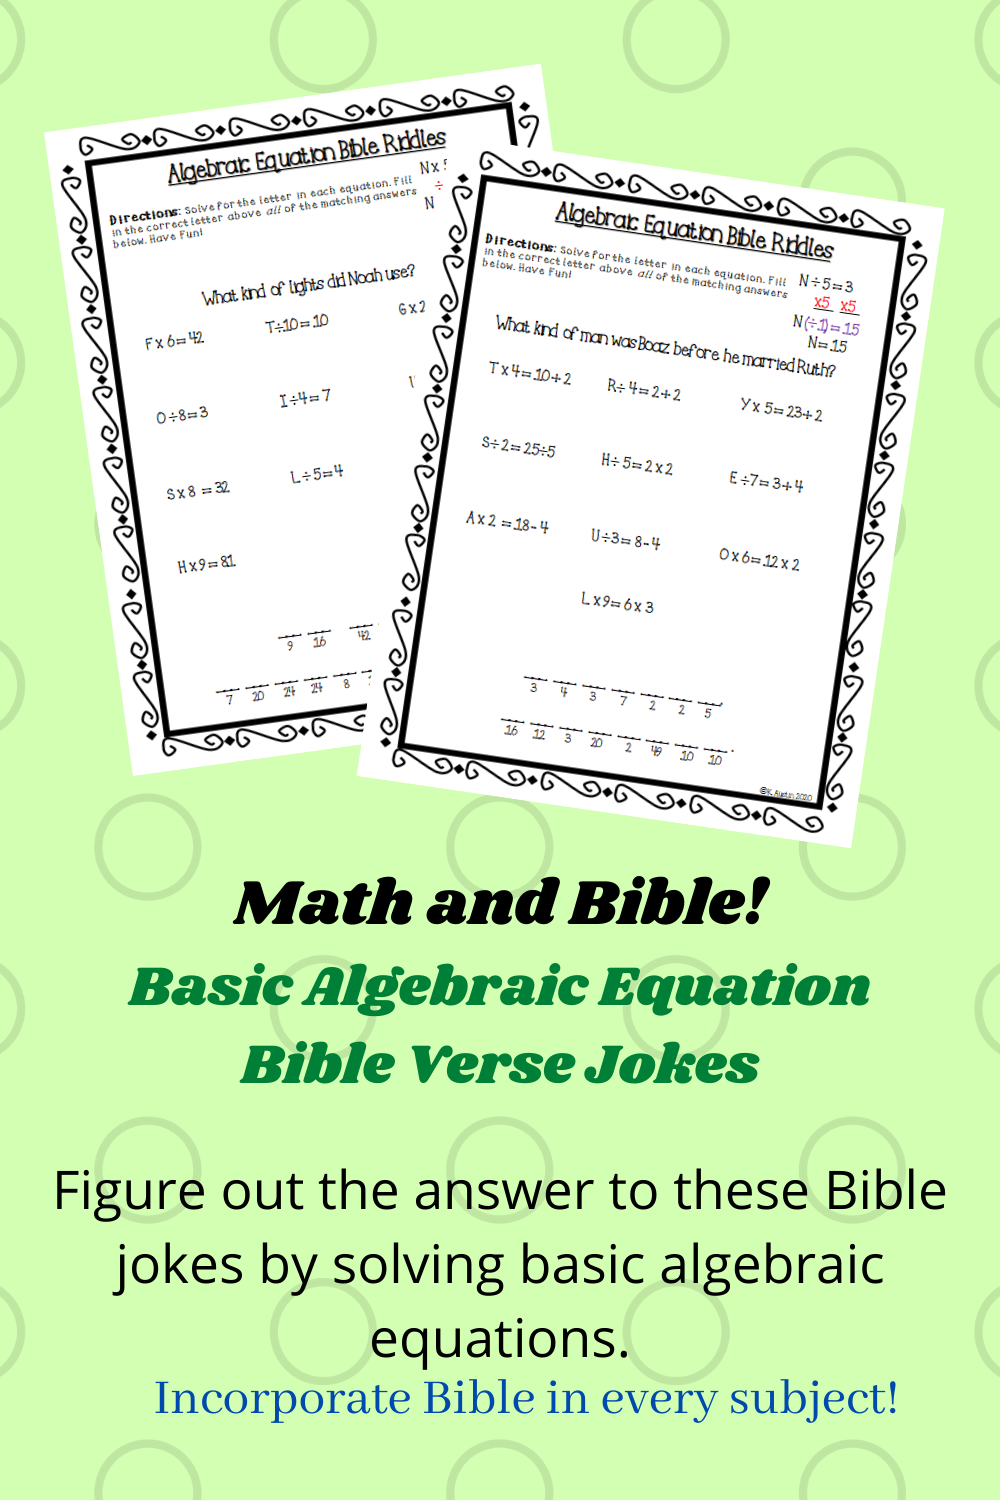 Algebra and Bible fun! Solve these algebraic equations to